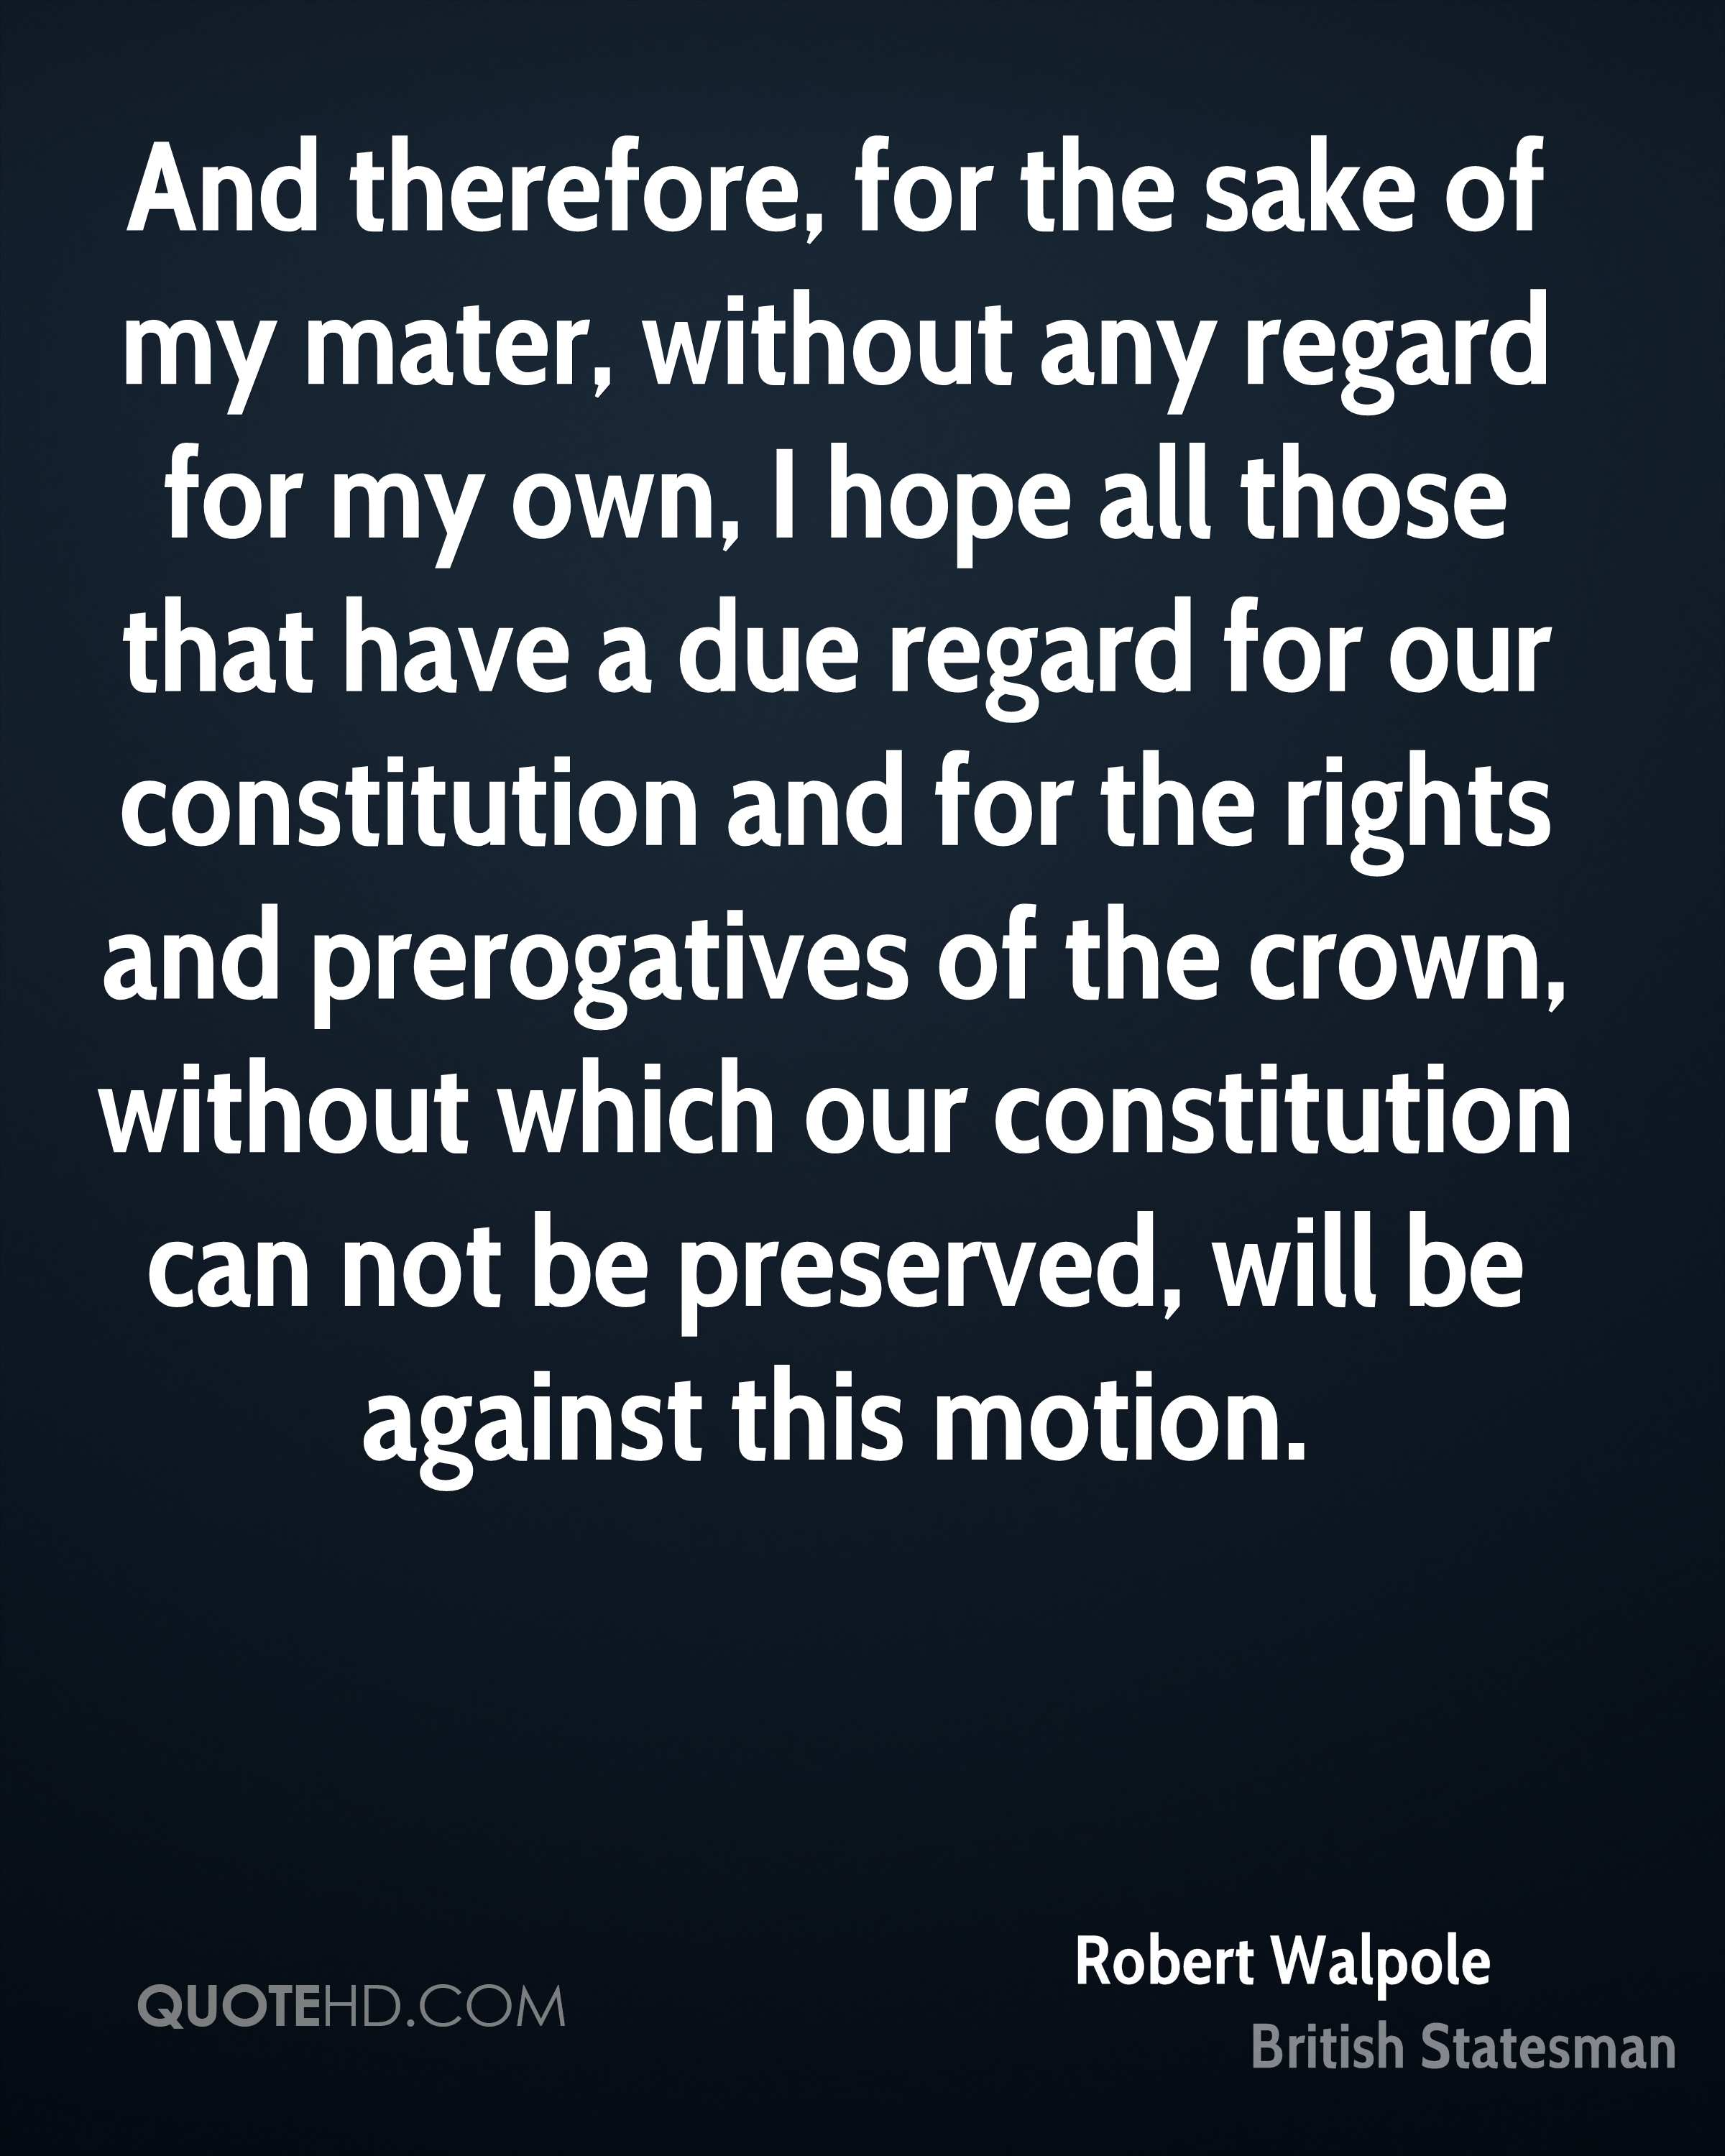 And therefore, for the sake of my mater, without any regard for my own, I hope all those that have a due regard for our constitution and for the rights and prerogatives of the crown, without which our constitution can not be preserved, will be against this motion.